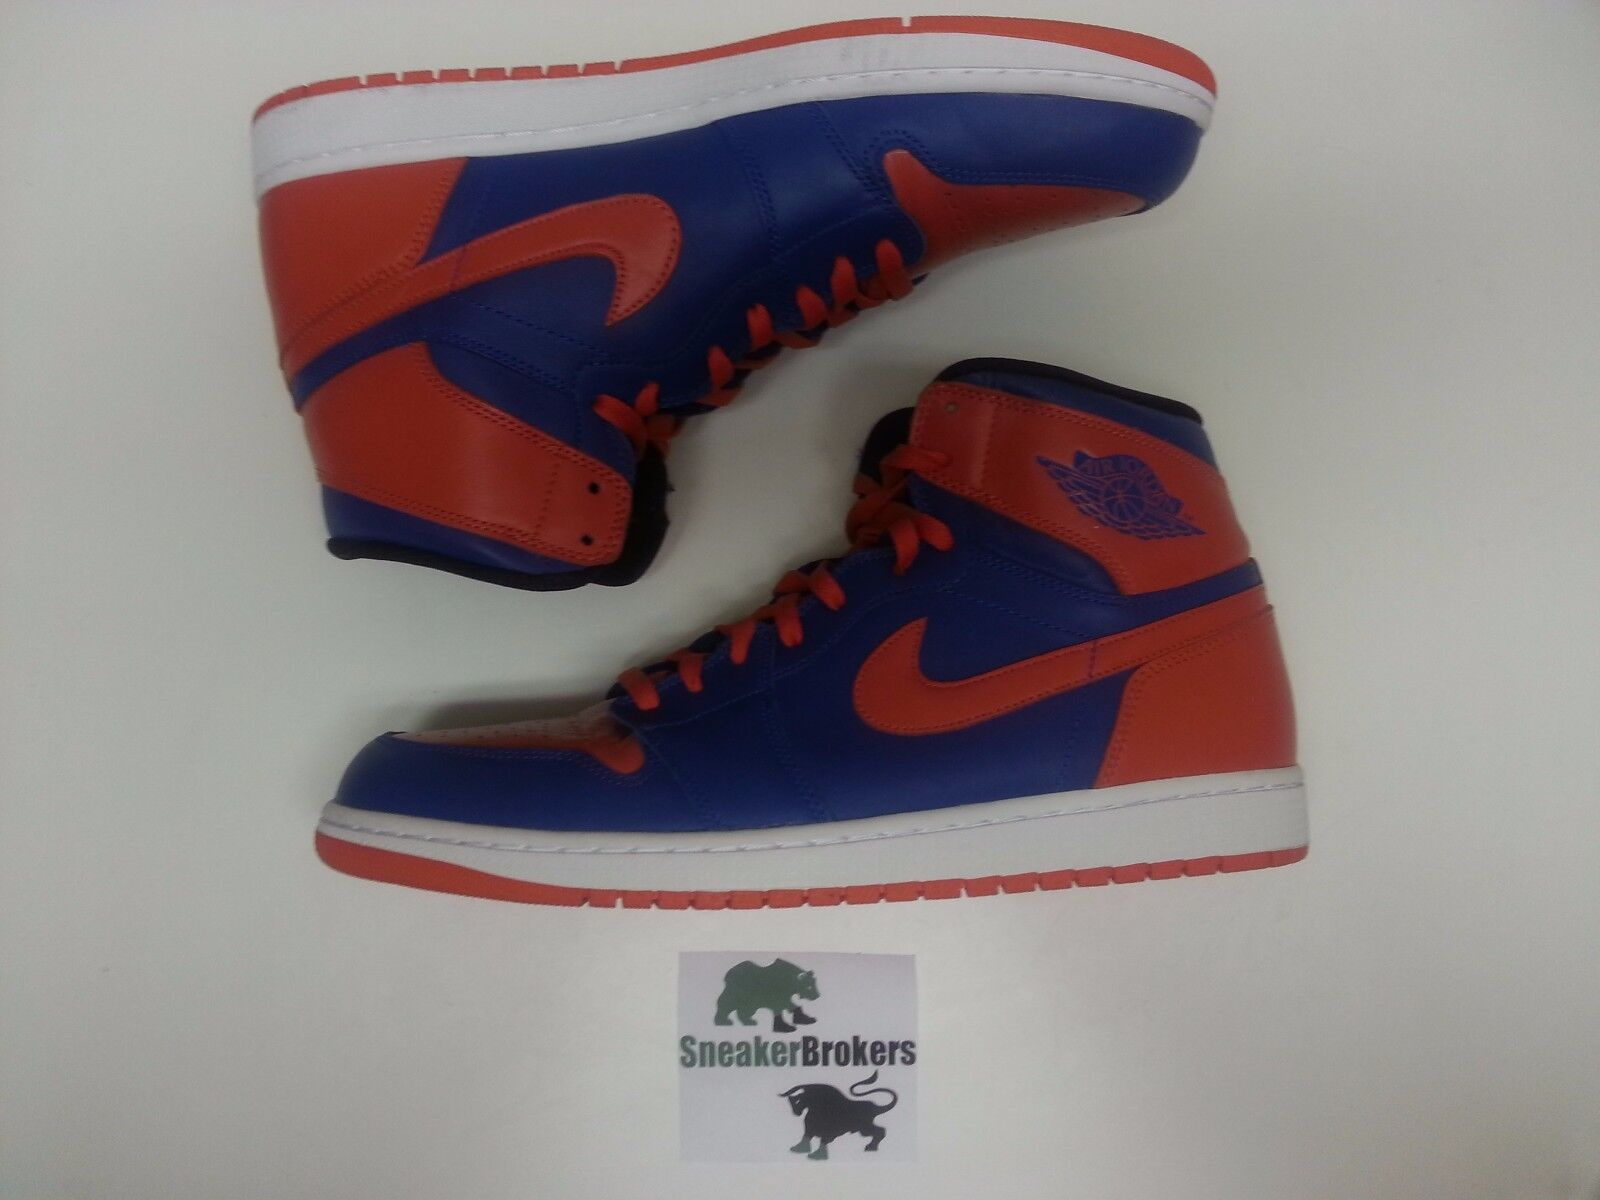 Air Jordan 1 Retro High OG Knicks Royal Blue Orange. Comfortable Seasonal clearance sale